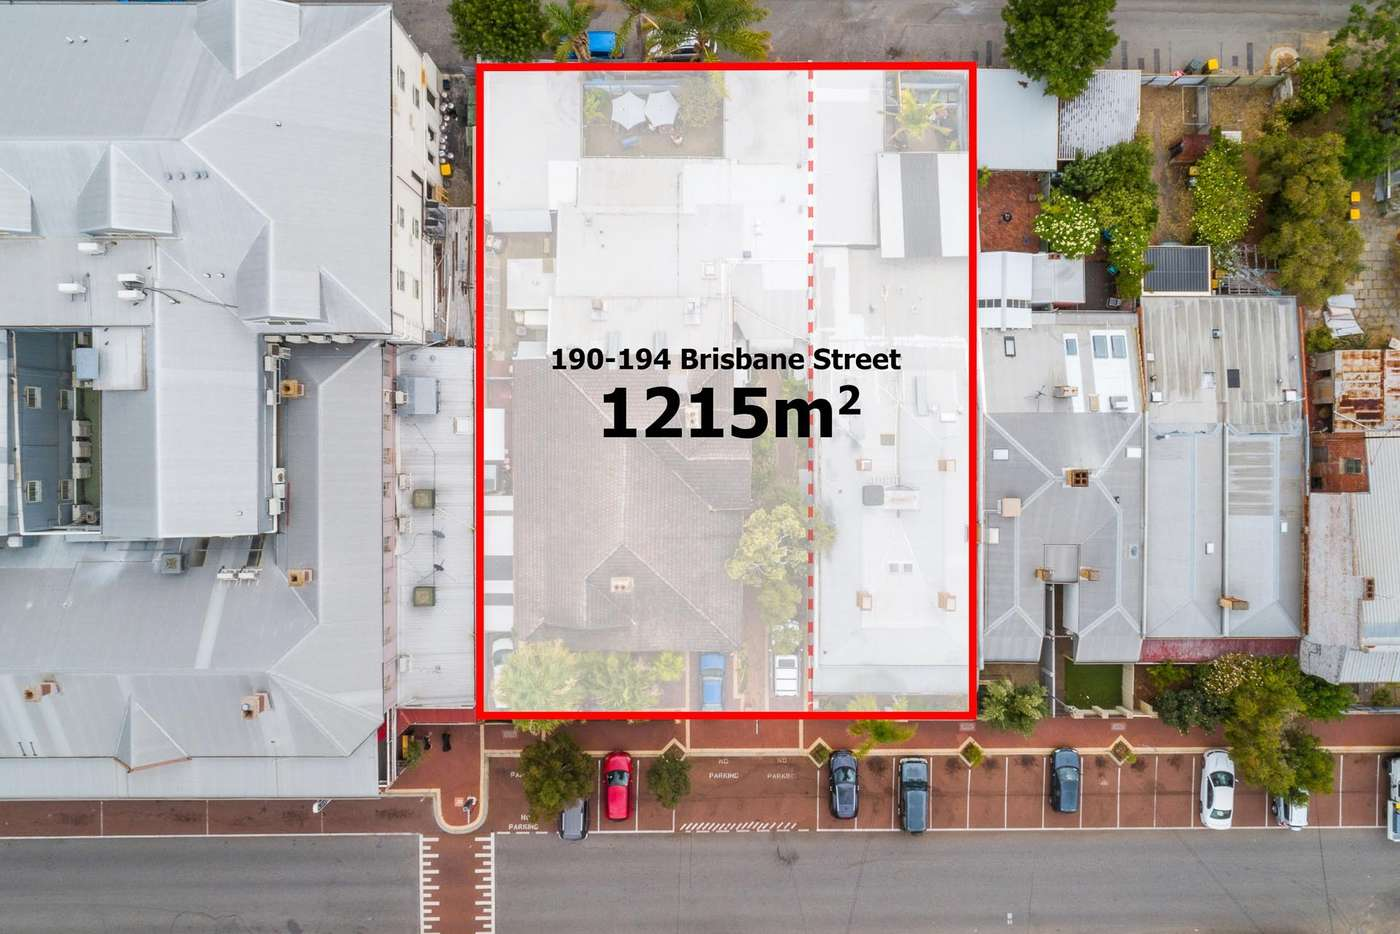 Main view of Homely residentialLand listing, 190-194 Brisbane Street, Perth WA 6000